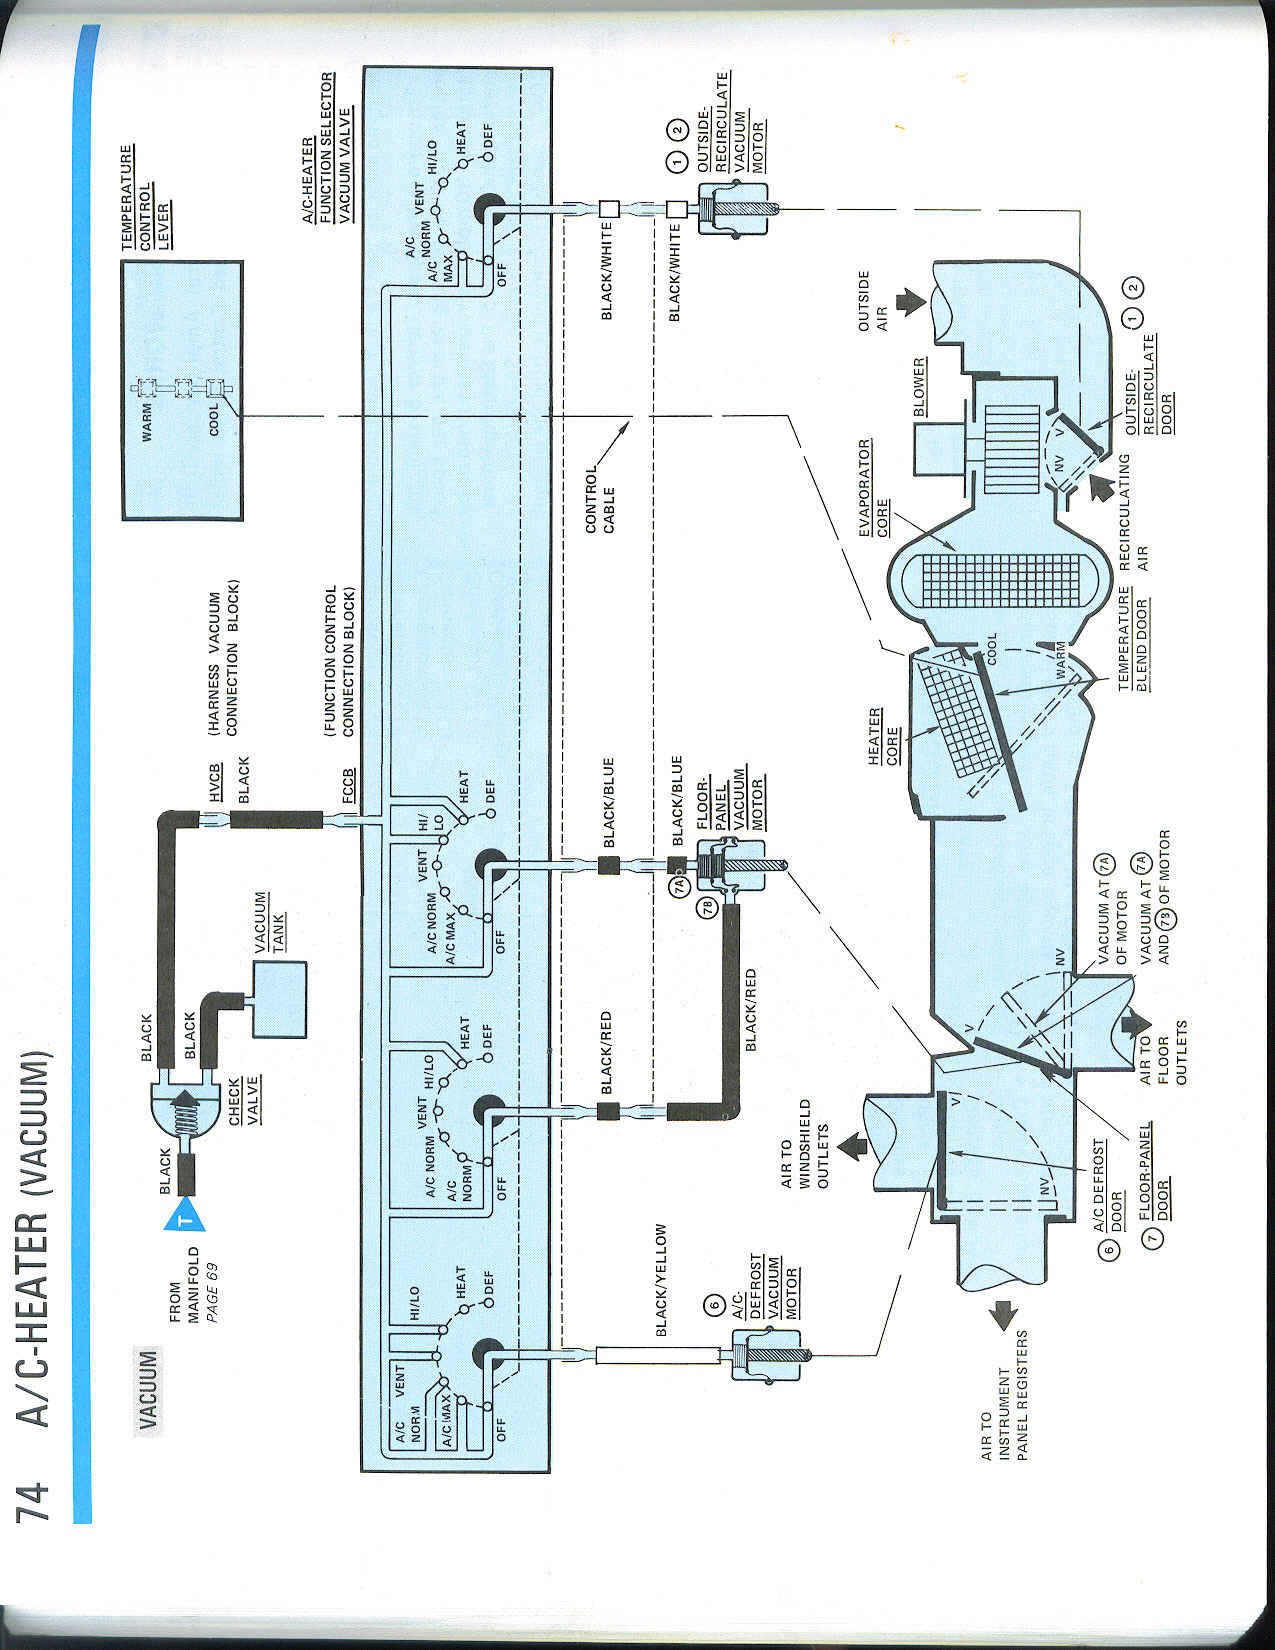 1989 Ford Mustang With 2 3l Turbo Vac Diagram